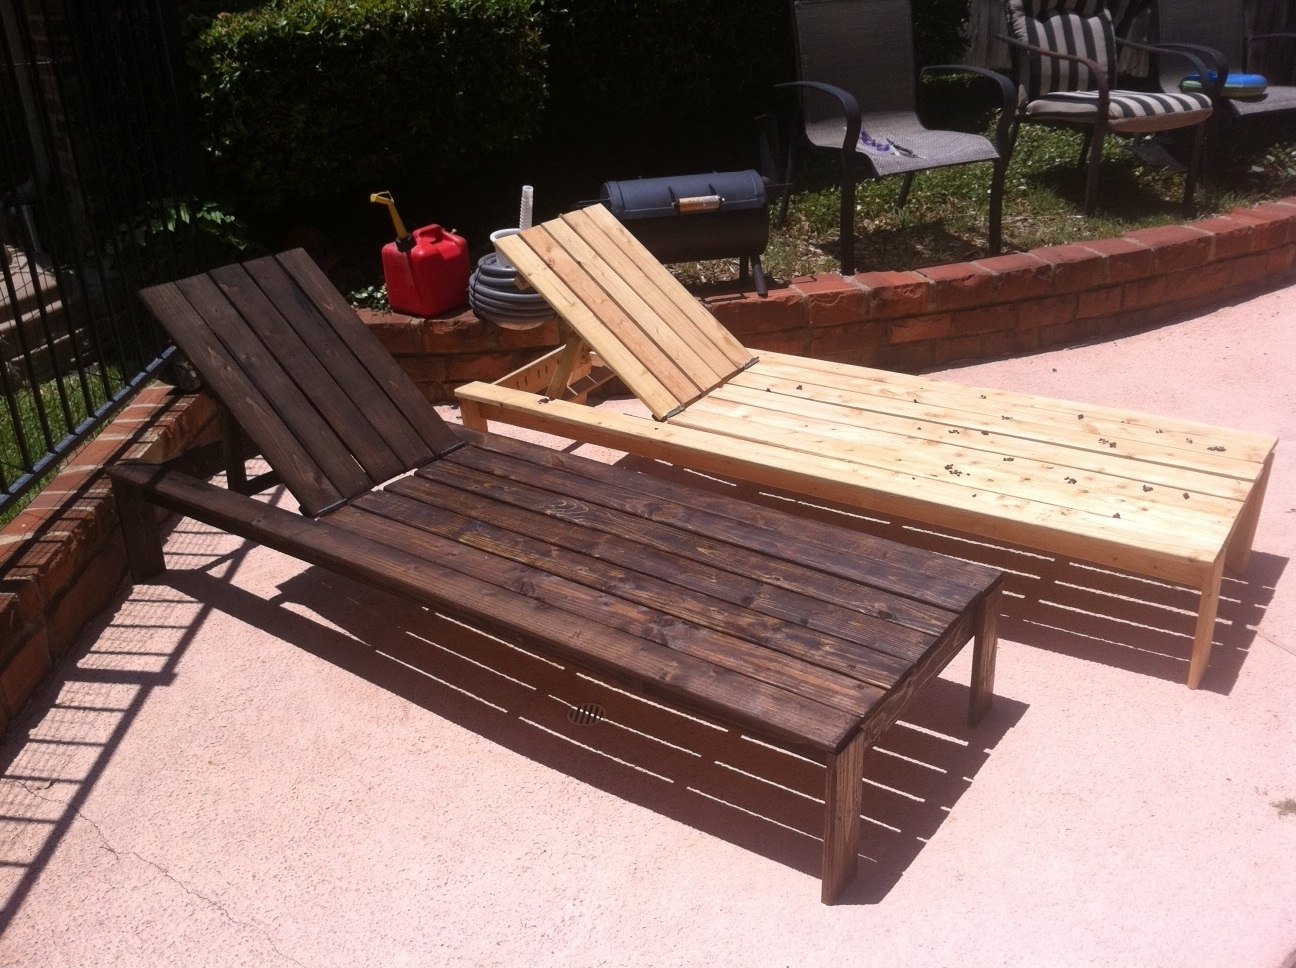 Diy Pool Chaise Lounge Chairs — Bed And Shower : Decorating Pool For Most Popular Diy Outdoor Chaise Lounge Chairs (View 6 of 15)